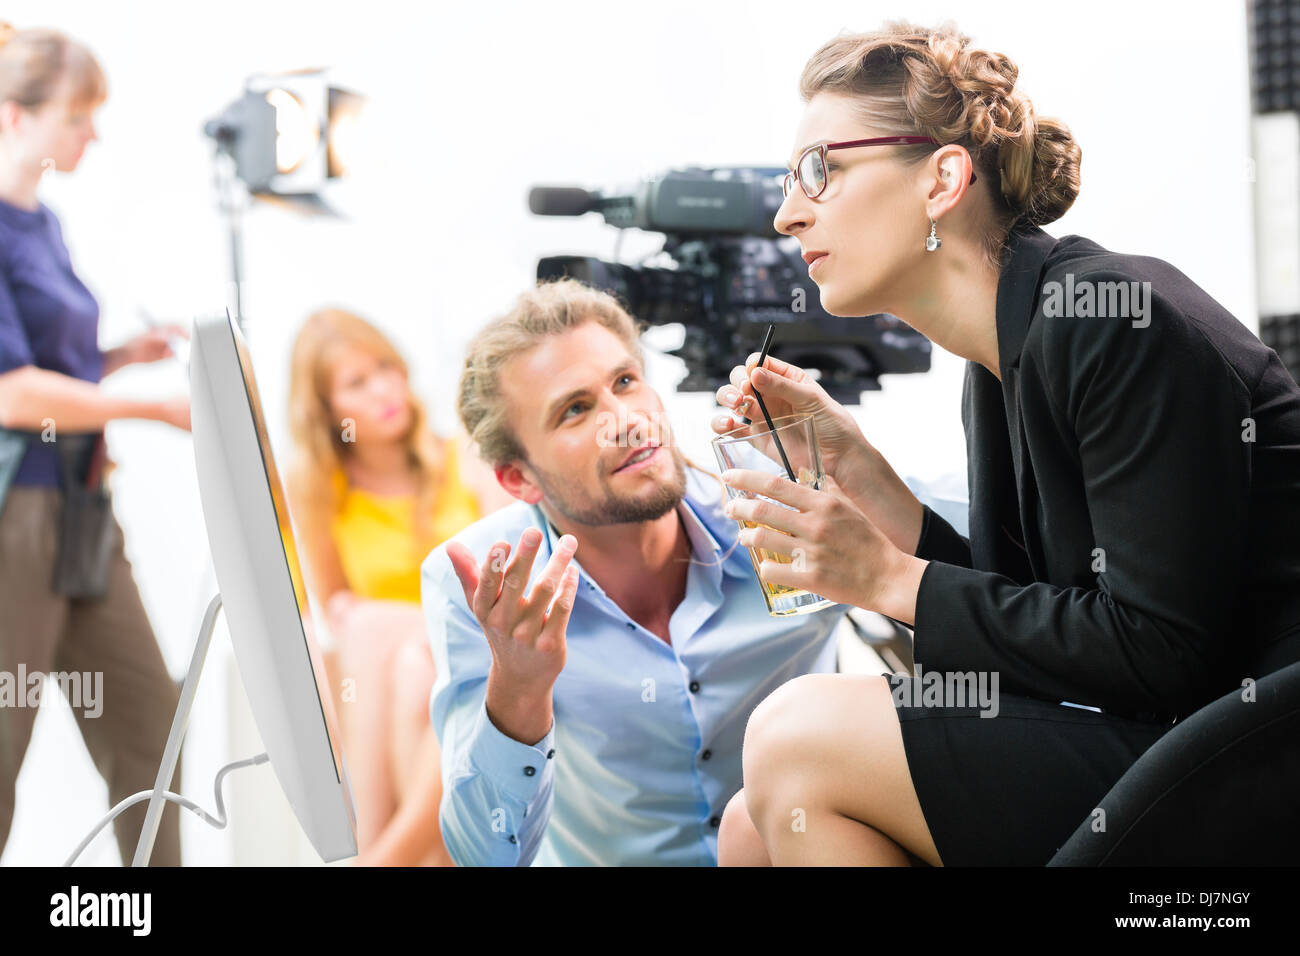 Team or Director discussing during a break the scene direction on set of a commercial video production or reportage at a screen - Stock Image